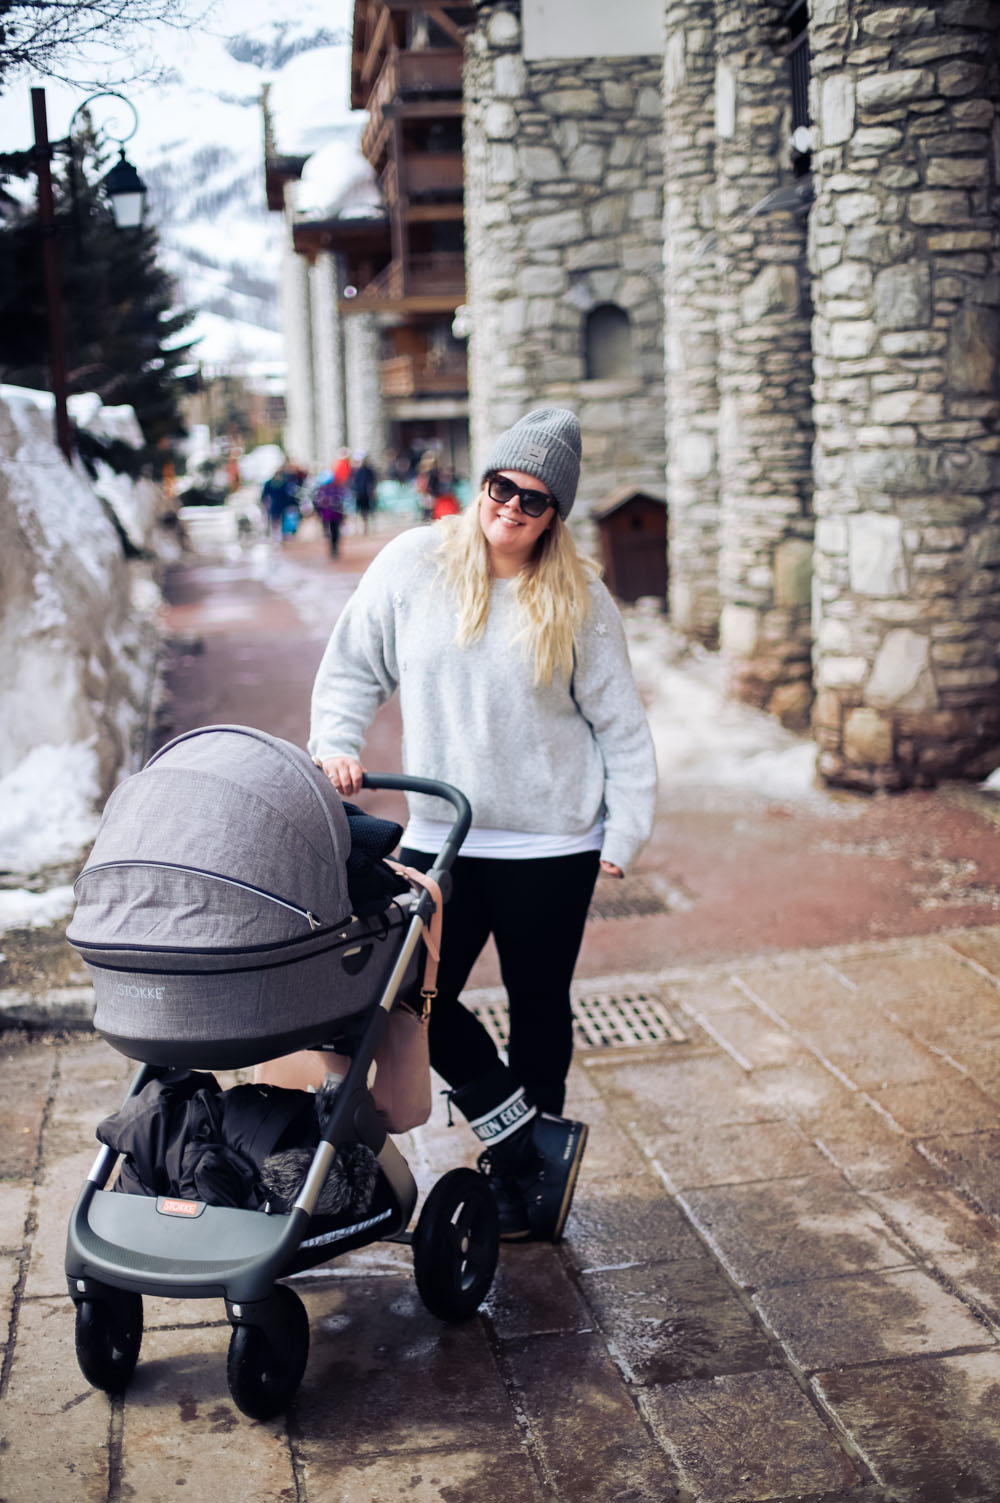 skiferie-val-disere-baby-6-of-20